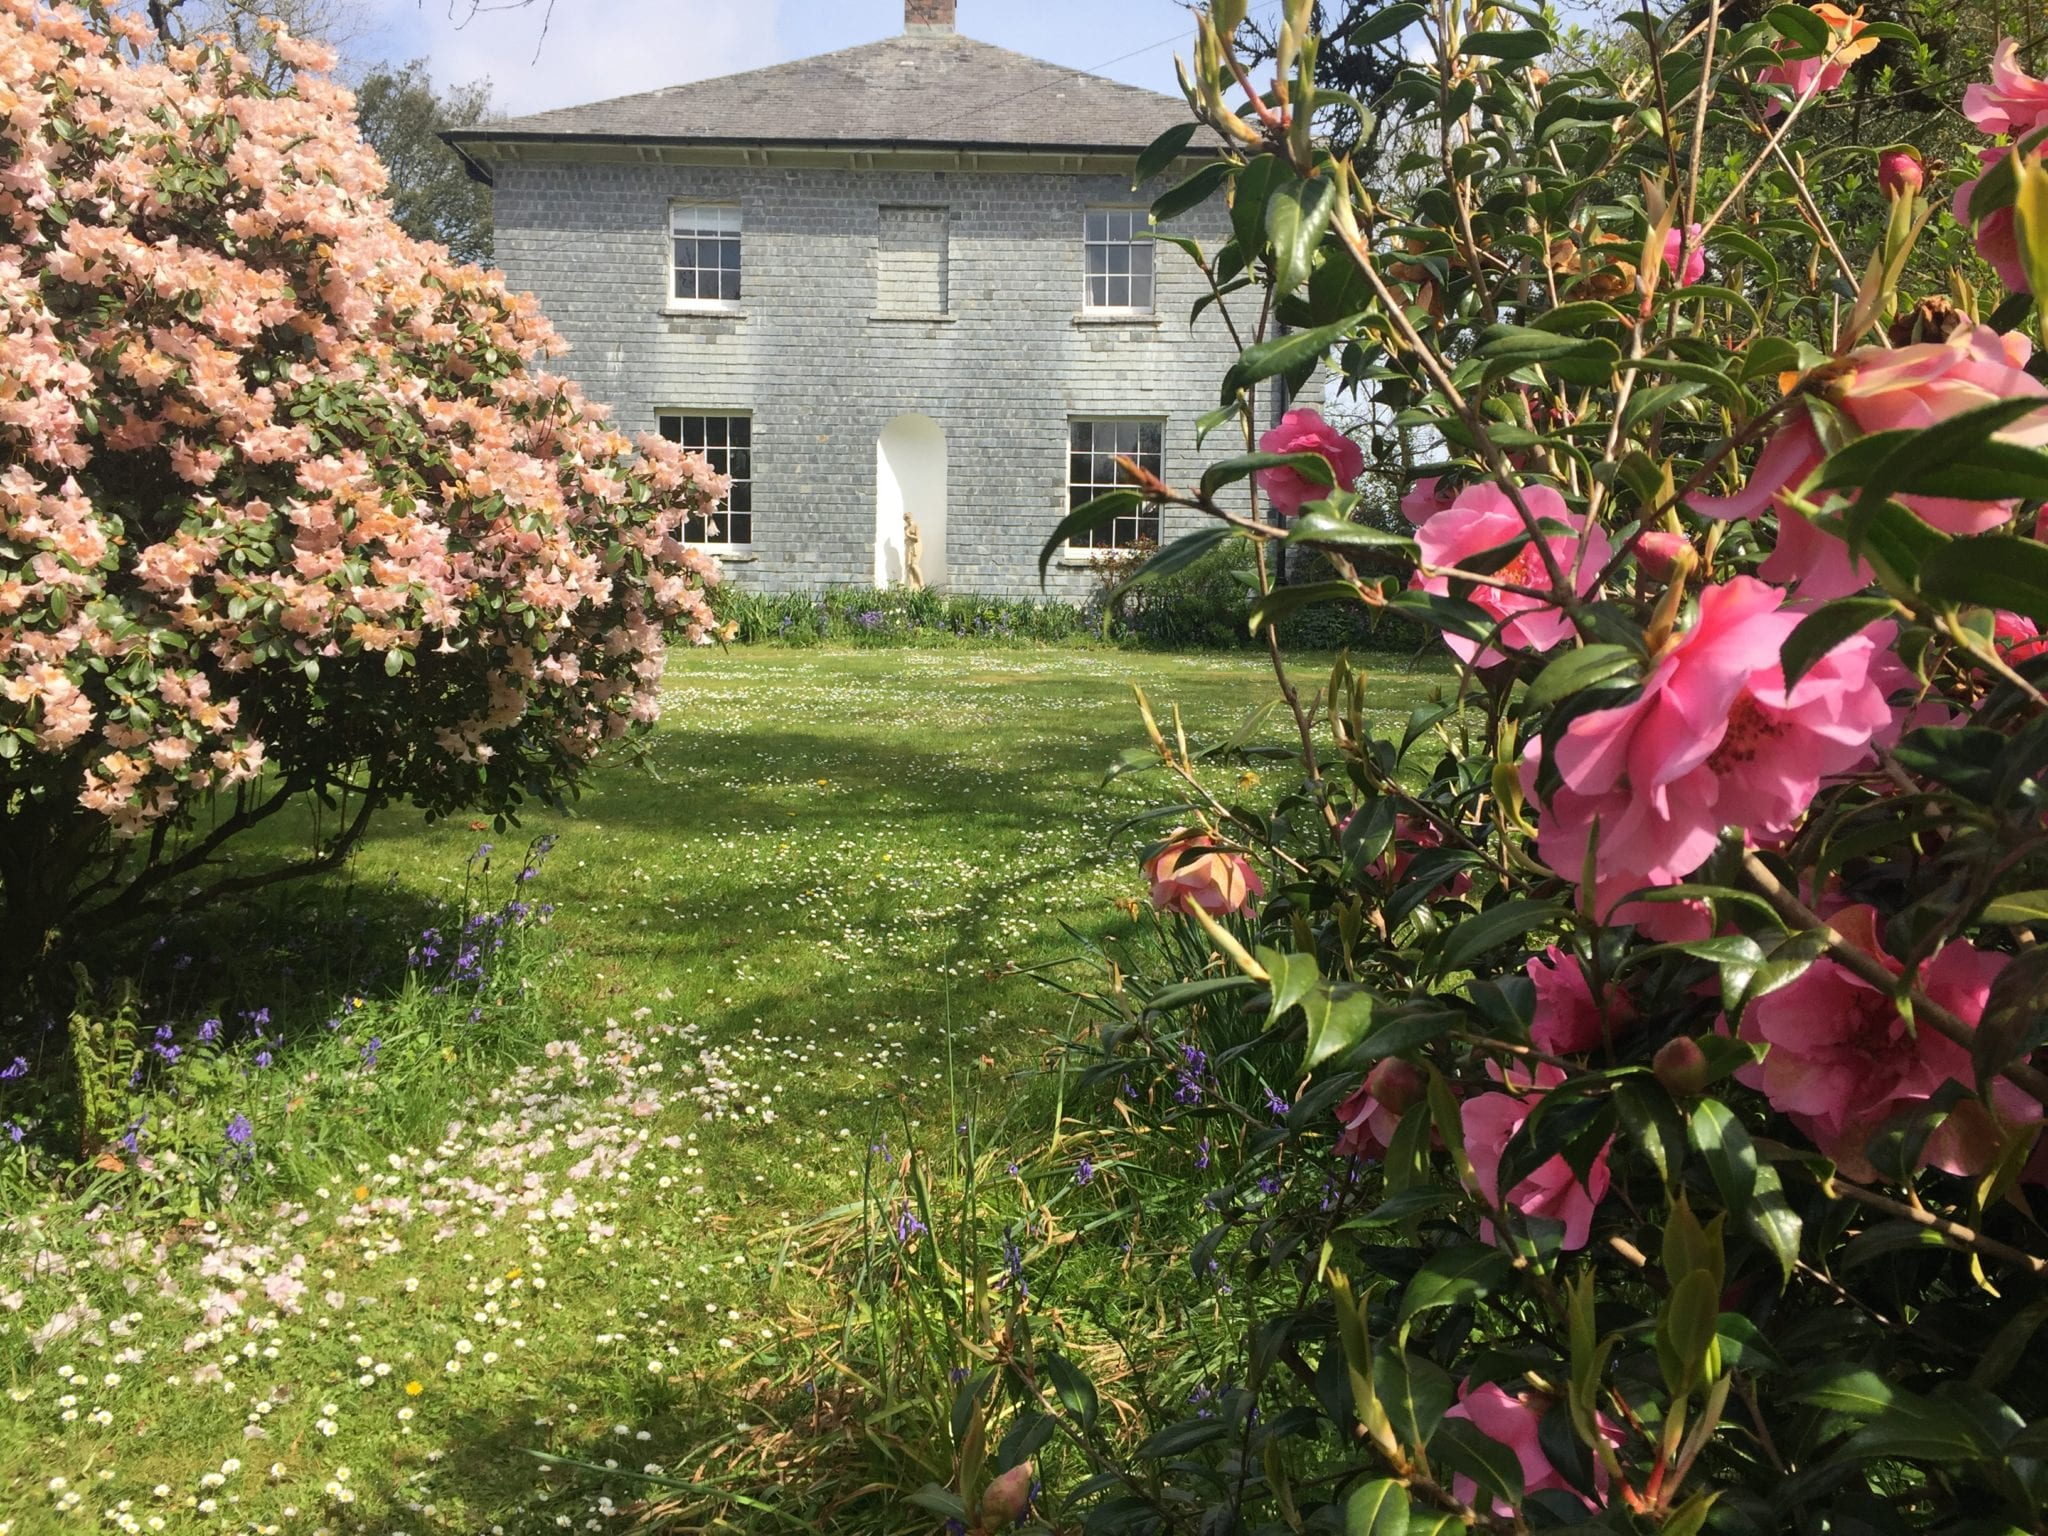 green lawns and pink flowering bushes in Georgian country house garden